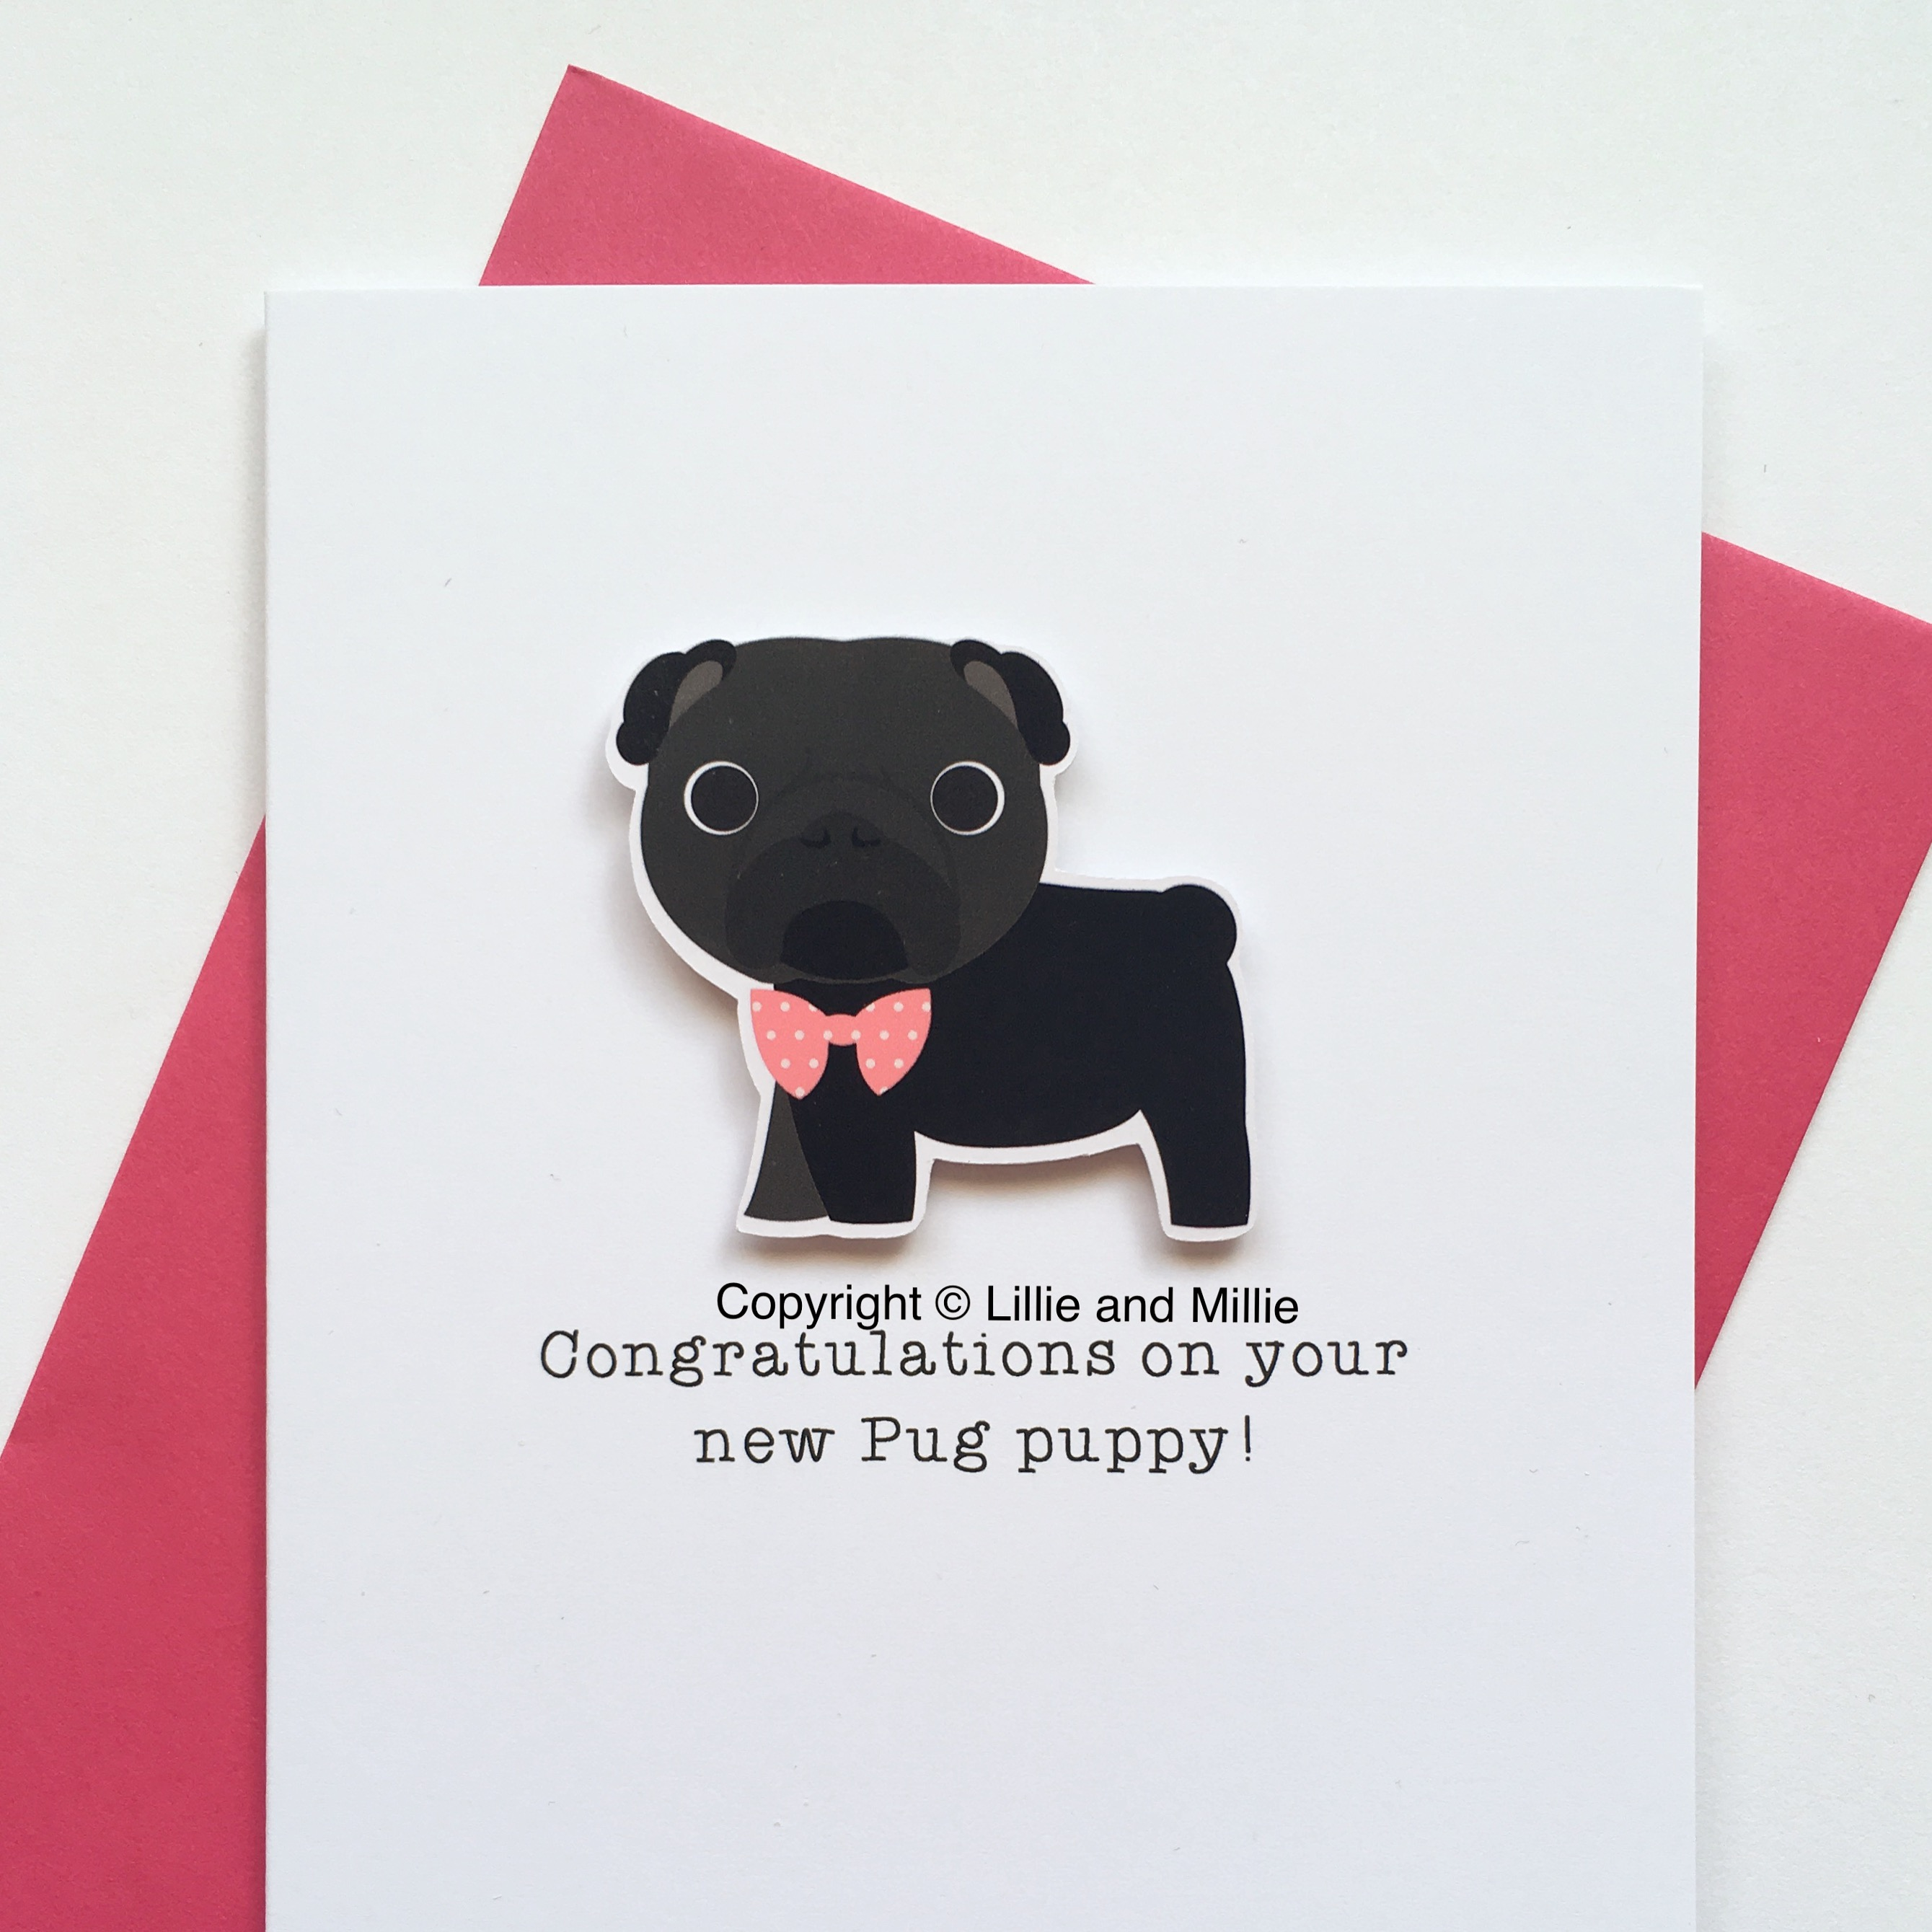 Cute and Cuddly Black Pug Pink Bow Congratulations Puppy Card